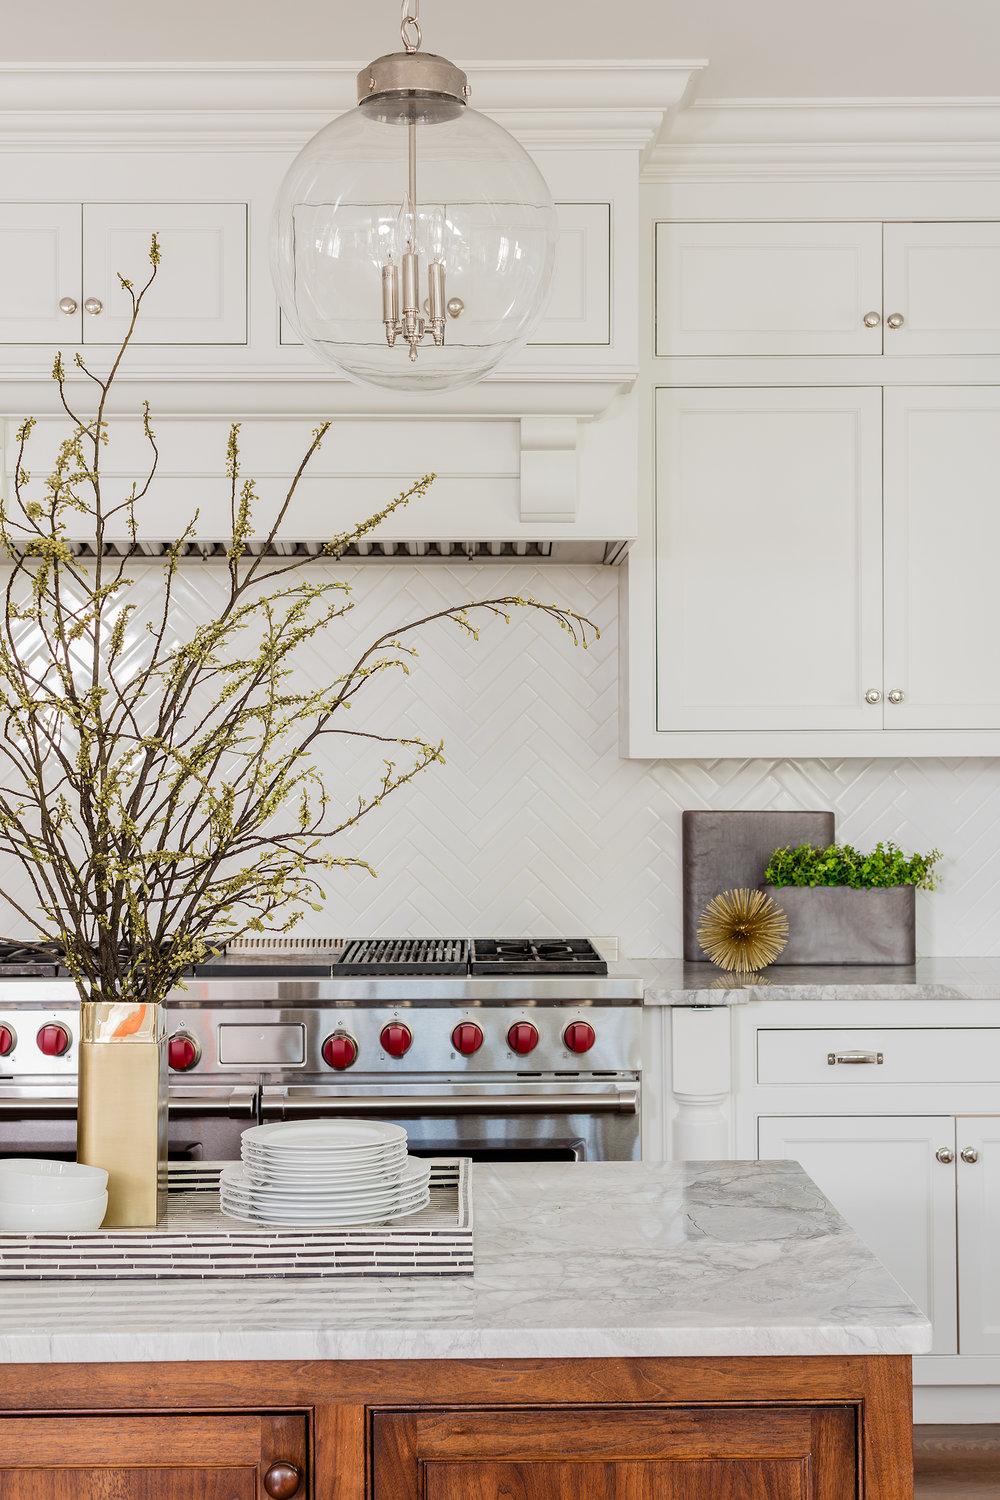 The Best Projects By Nicole Hogarty Designs nicole hogarty designs The Best Projects By Nicole Hogarty Designs 2 4